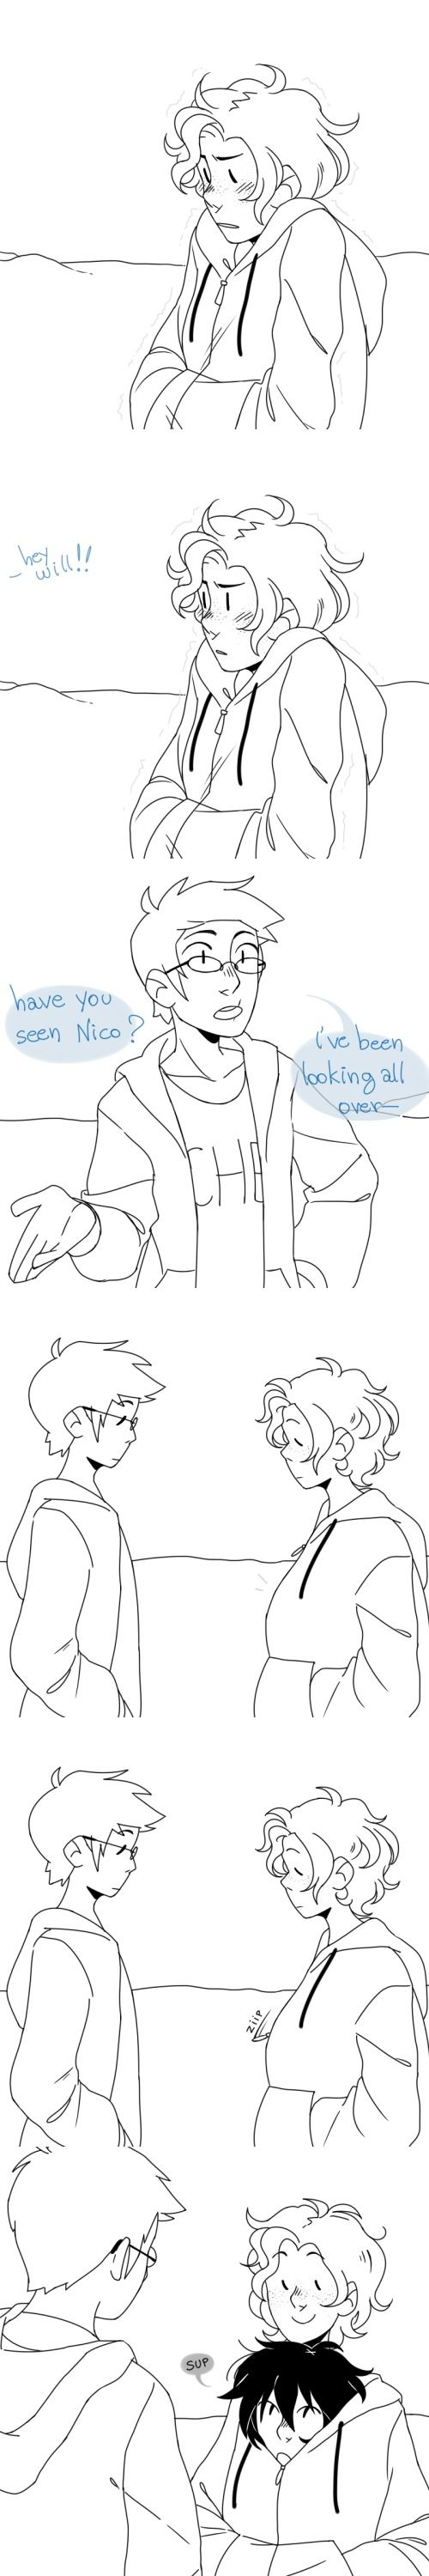 thesquirrelisonfire: It's winter in CHB and Will is wearing a really oversized sweater because Apollo kids are sensitive to lack of sun and then Percy or Jason come around and ask him if he's seen Nico and suddenly his sweater starts wiggling and Nico's head pops from the collar and he's like sup